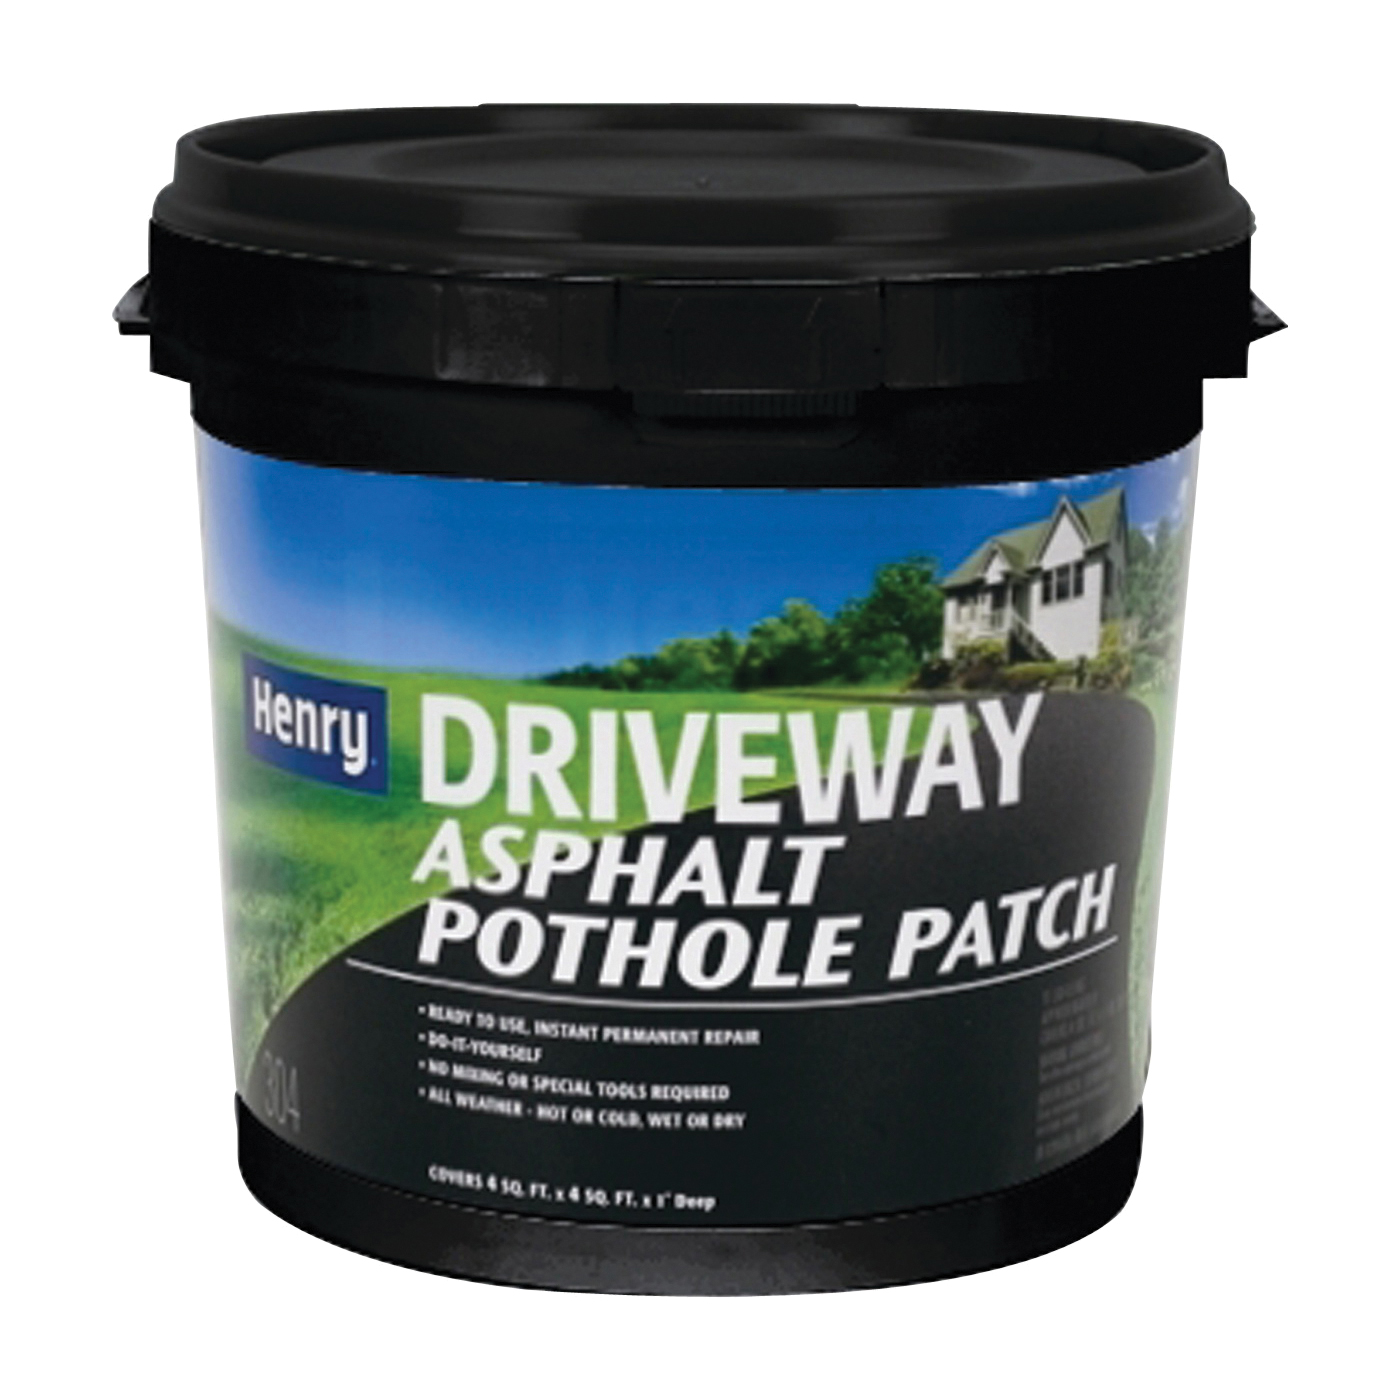 Picture of Henry HE304 Series HE304044 Pothole Patch, Solid, Black, Petroleum Distillates, 1 gal Package, Jug